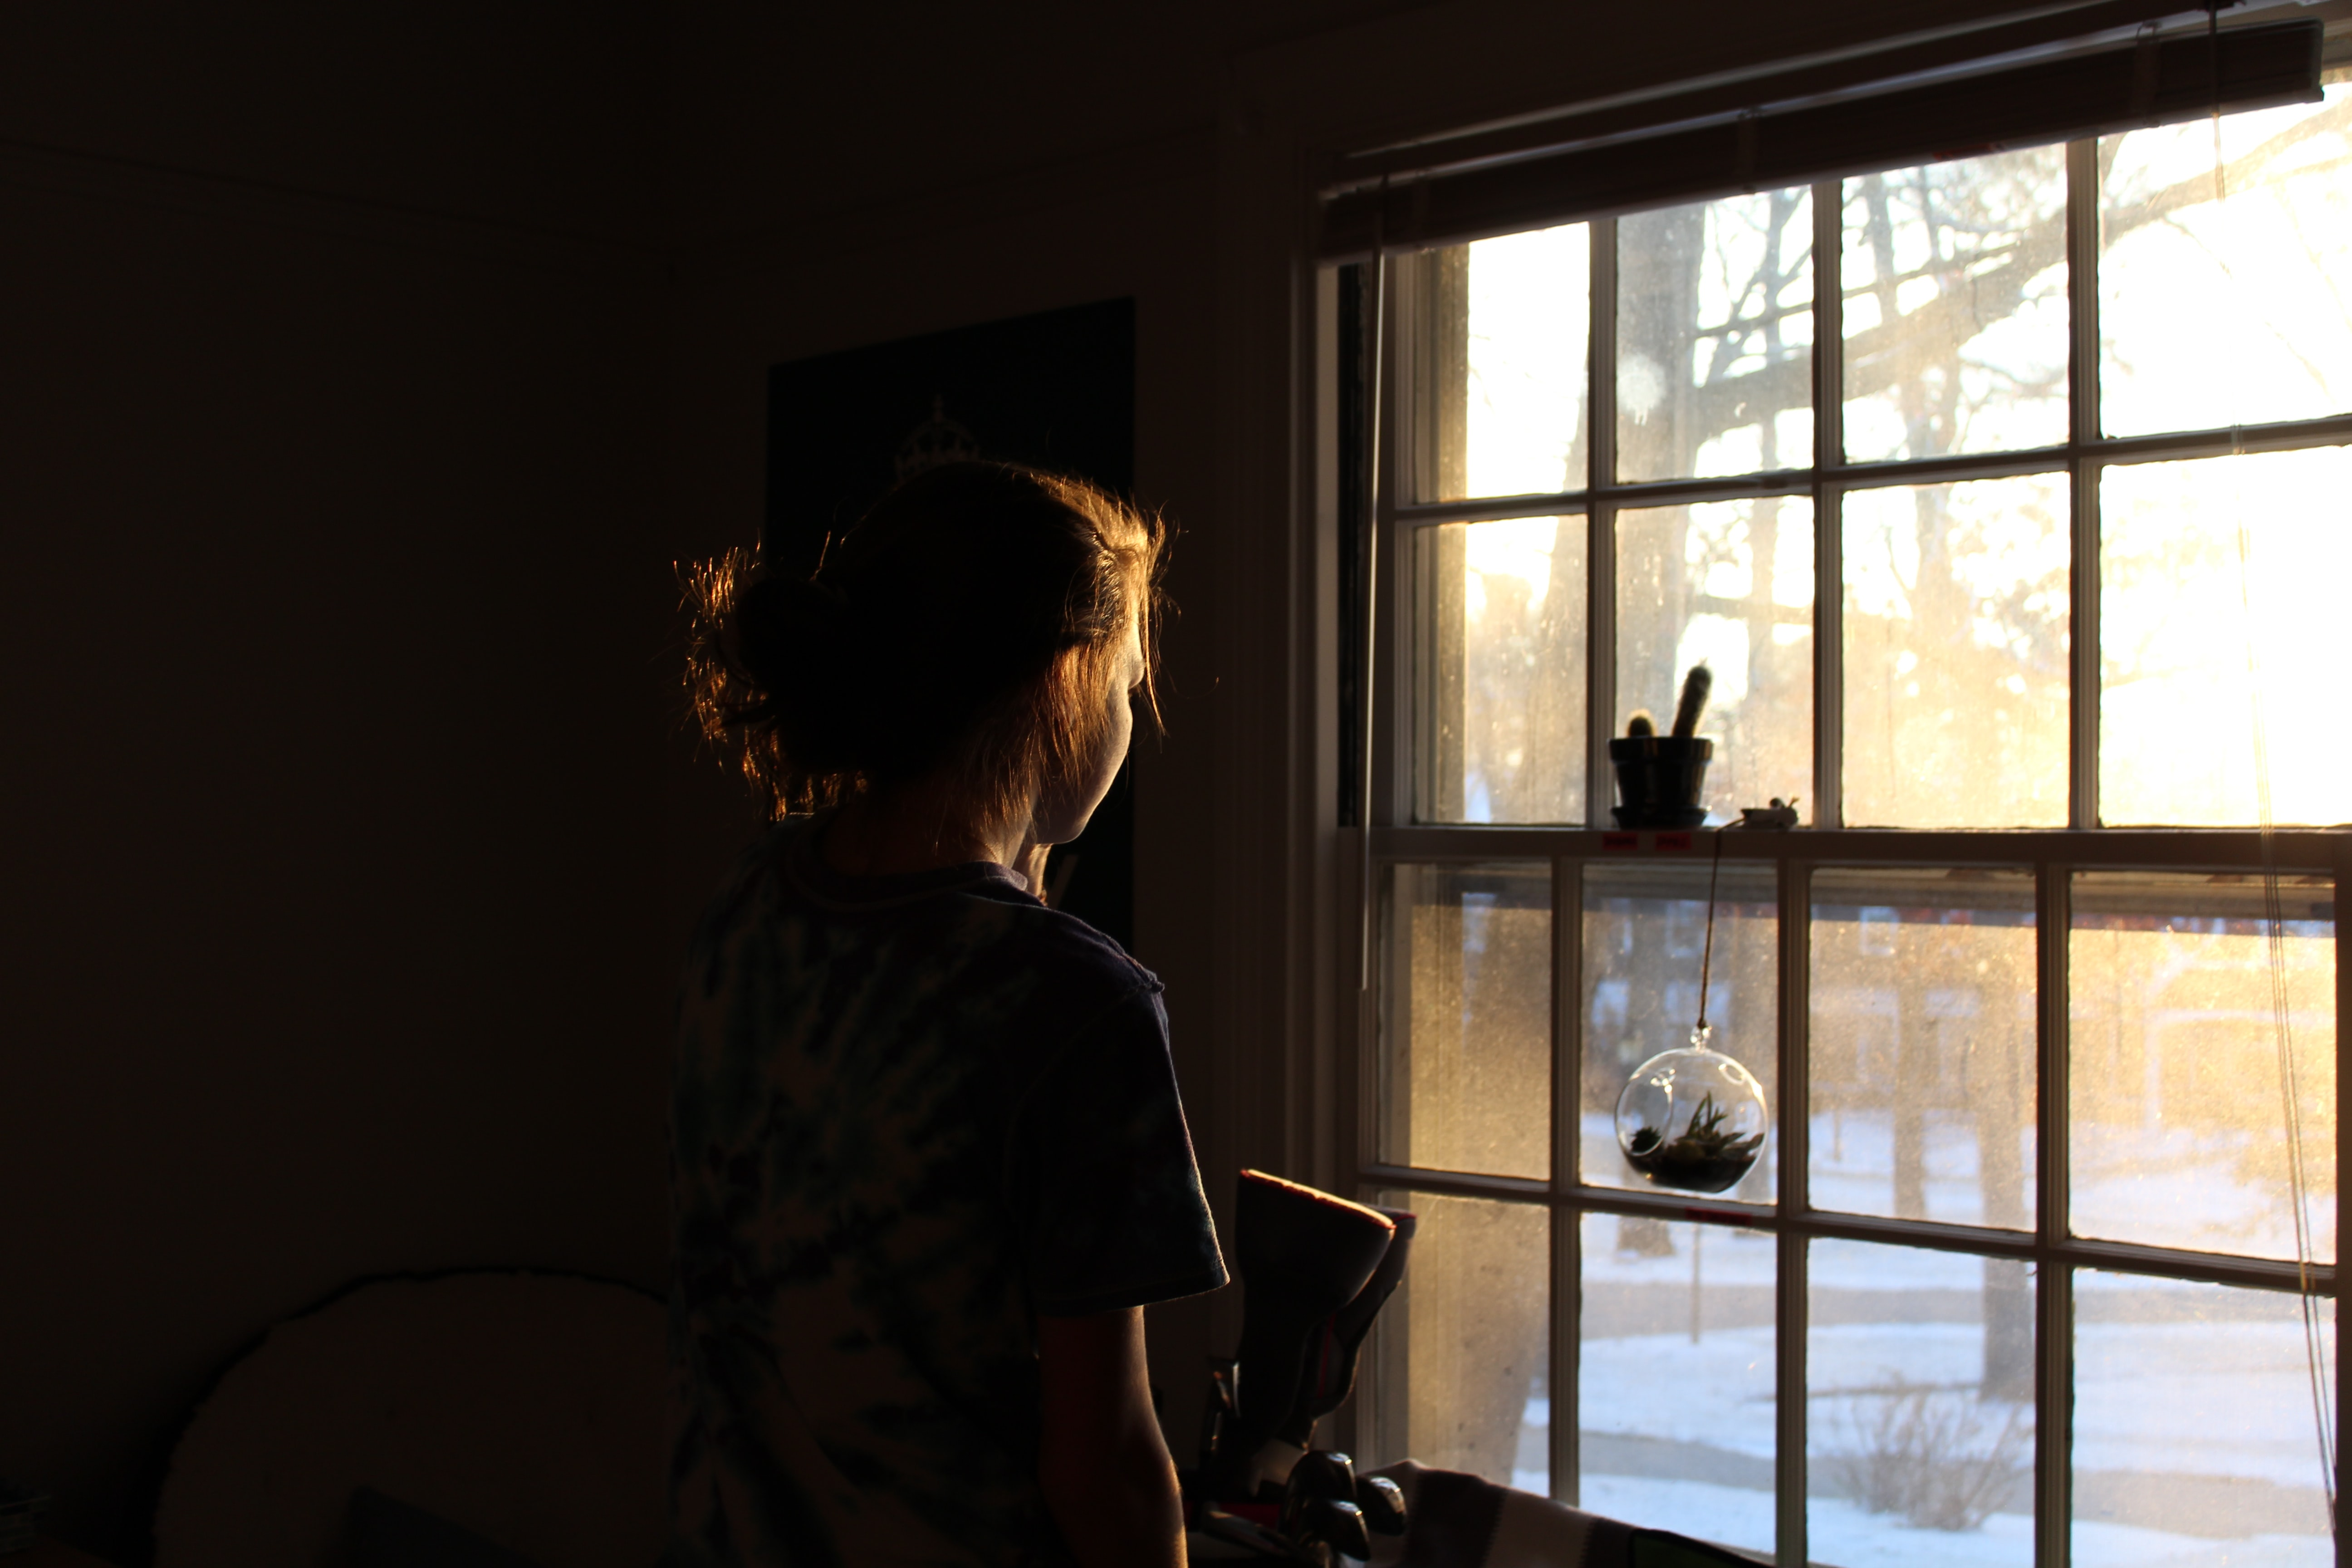 A woman's dark silhouette looks out the window into the brightness of the day.